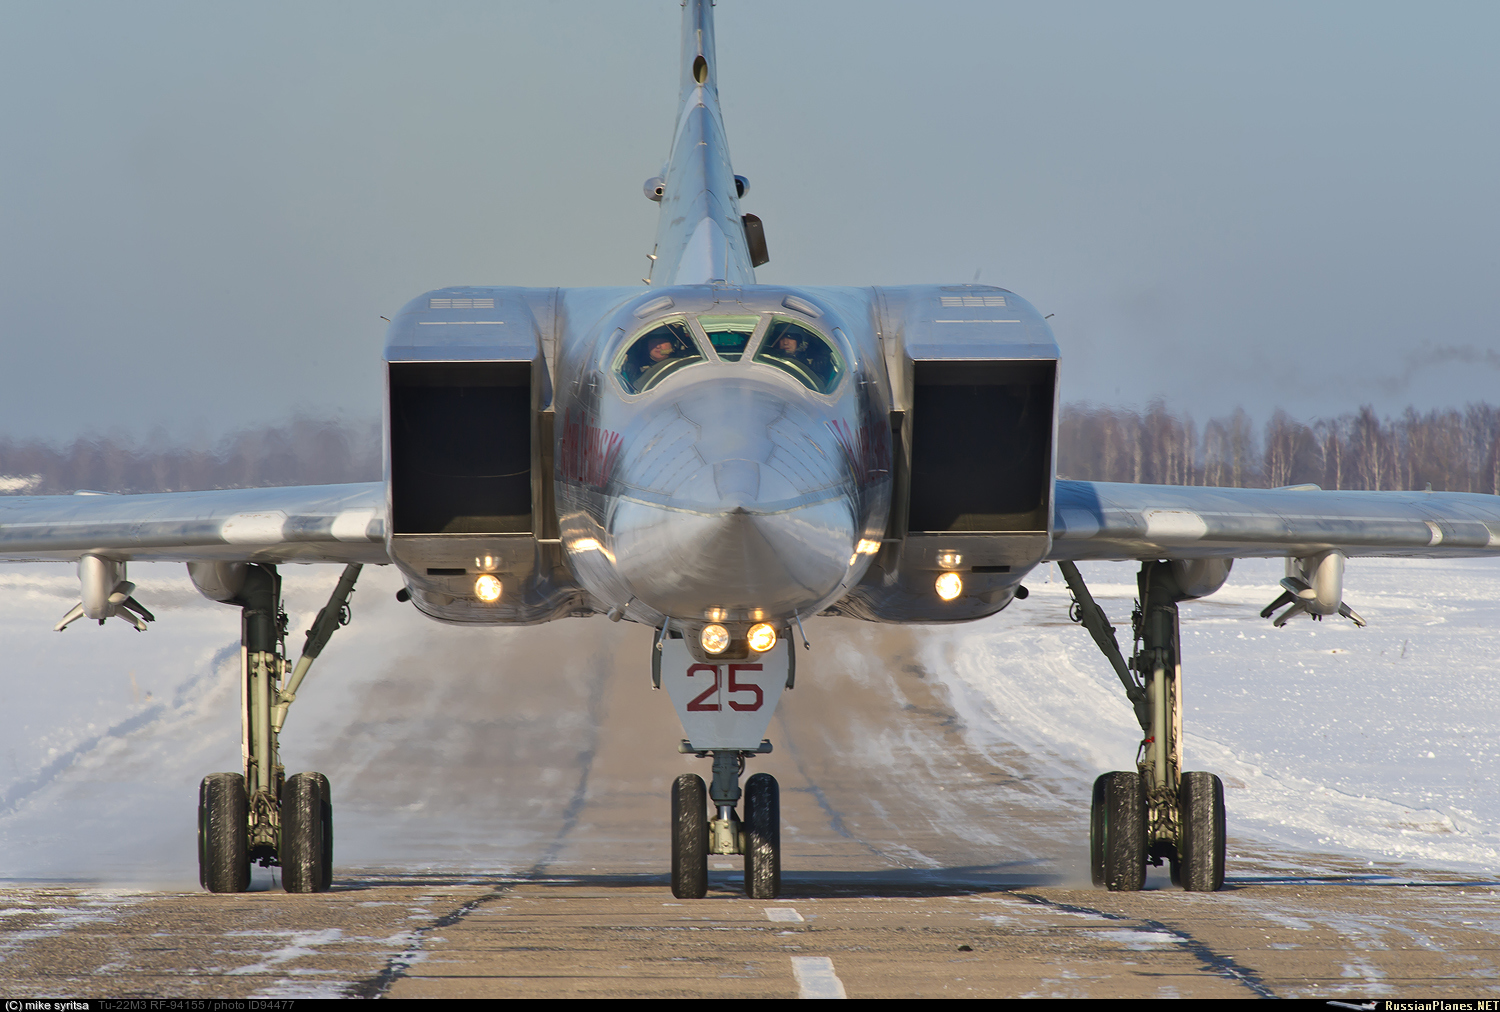 http://russianplanes.net/images/to95000/094477.jpg